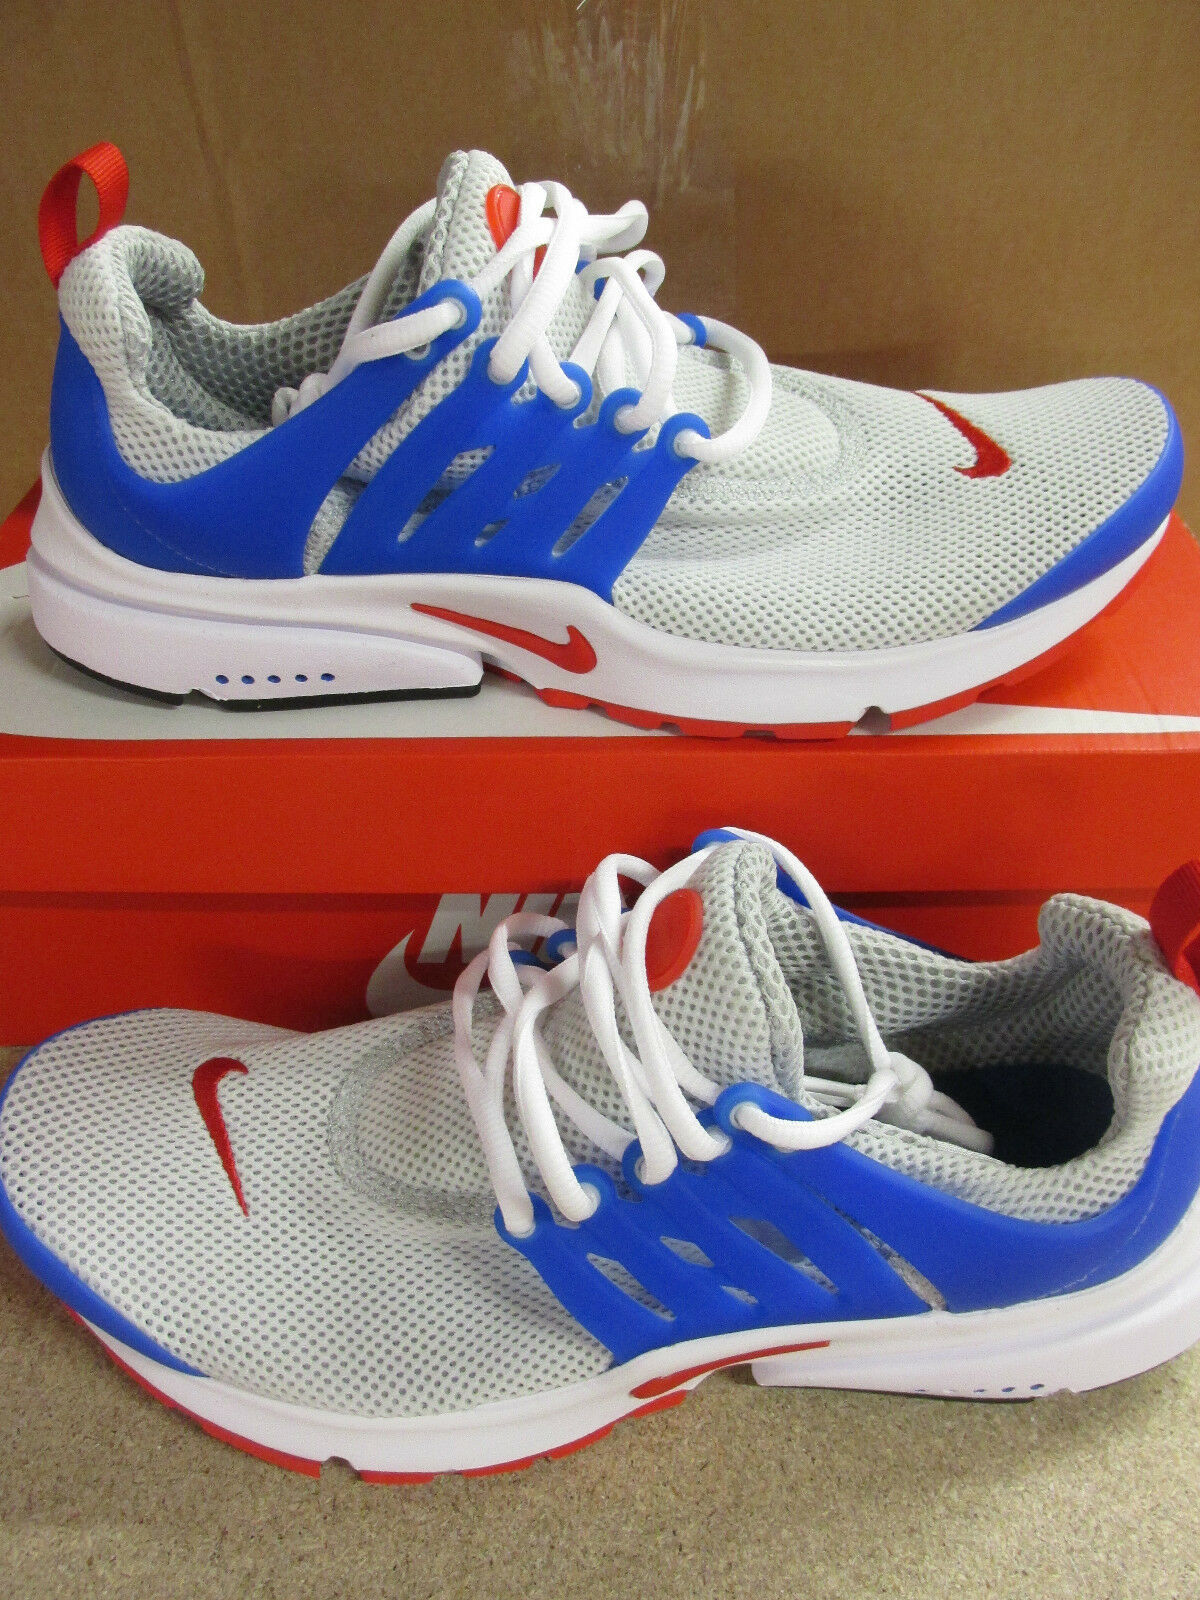 nike air presto essential mens running trainers 848187 004 sneakers shoes Casual wild